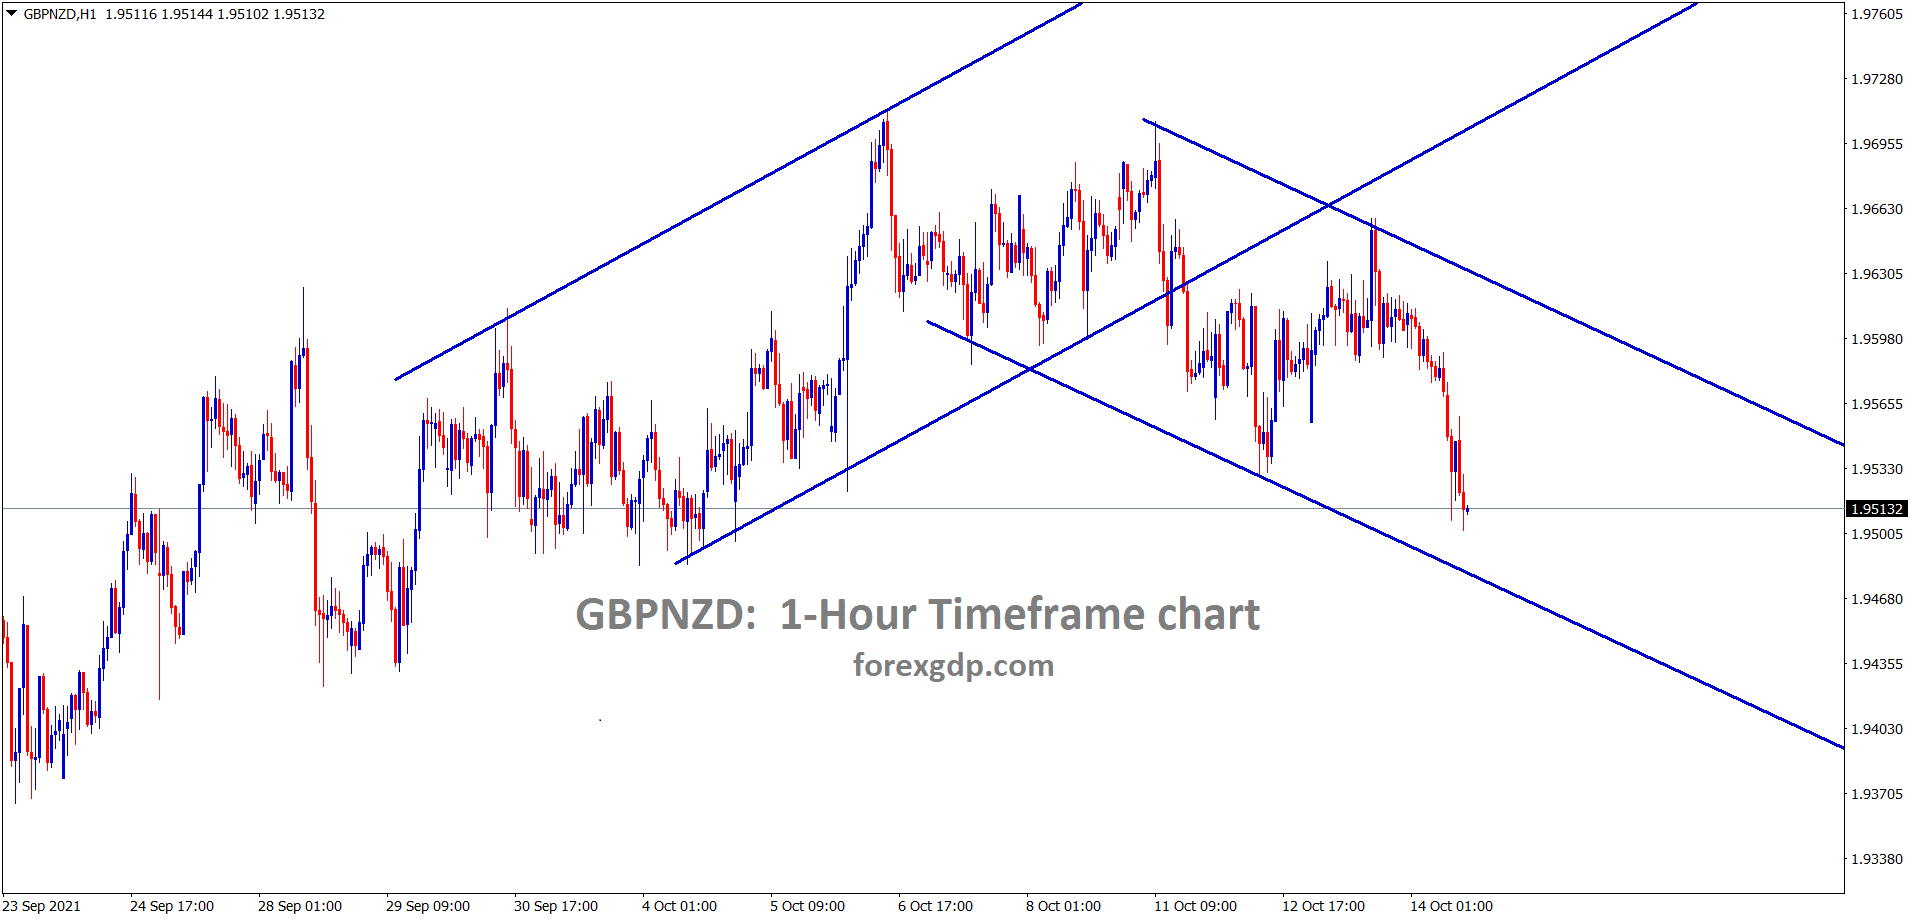 GBPNZD is moving between the channel ranges